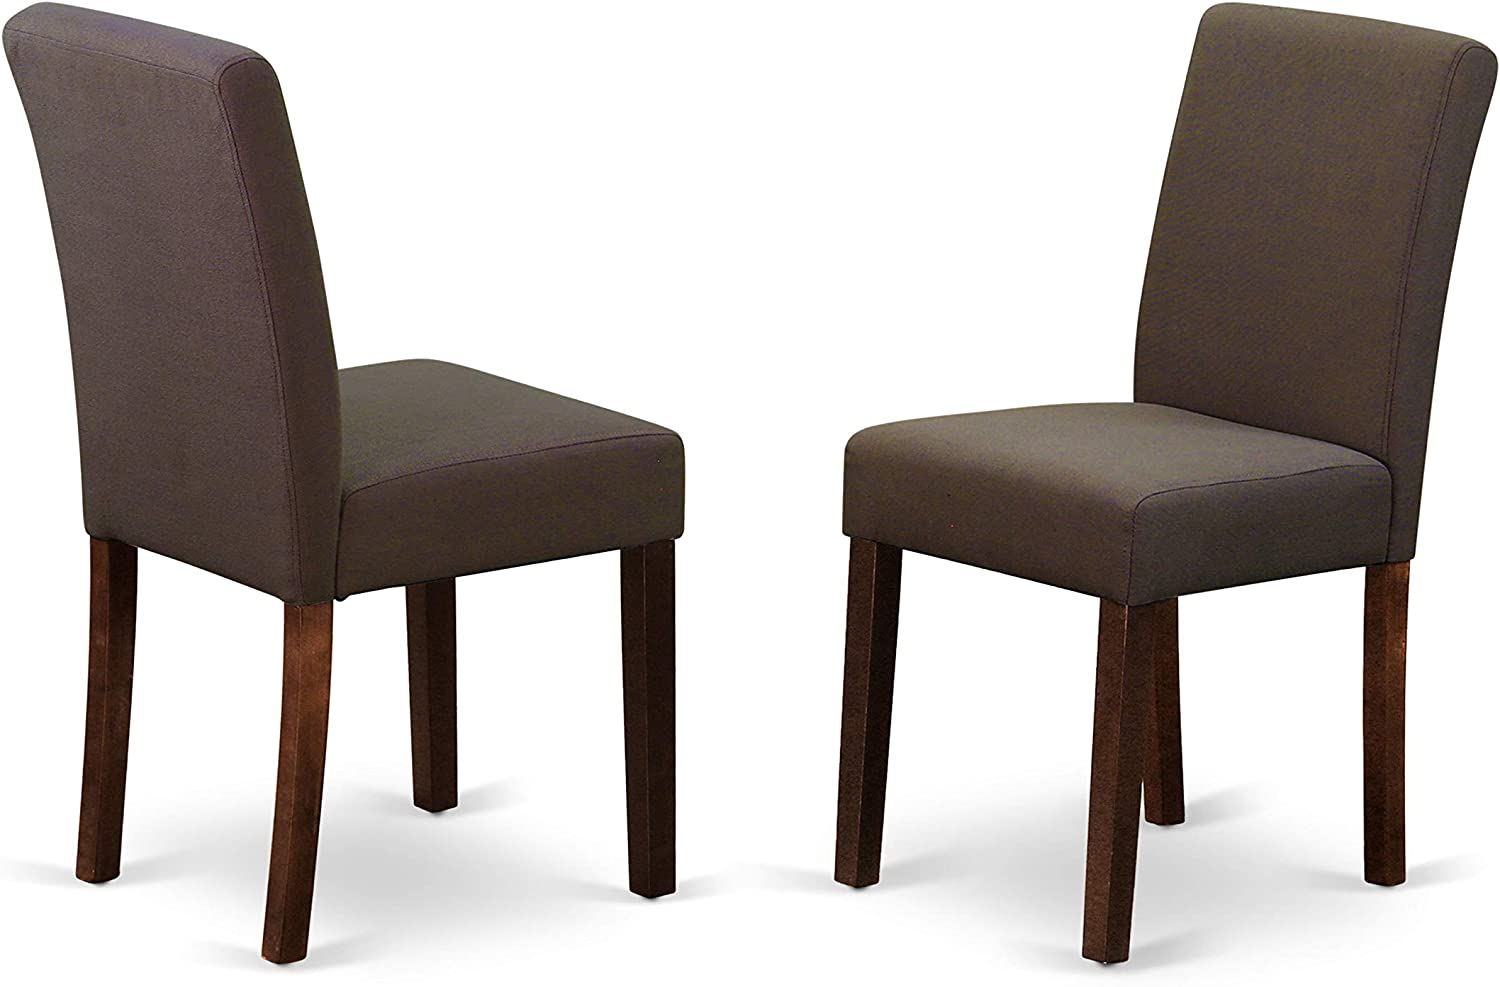 East West Furniture Abp3B18 Abbott Parson Chair With Mahogany Finish Leg And Linen Fabric-Coffee Color